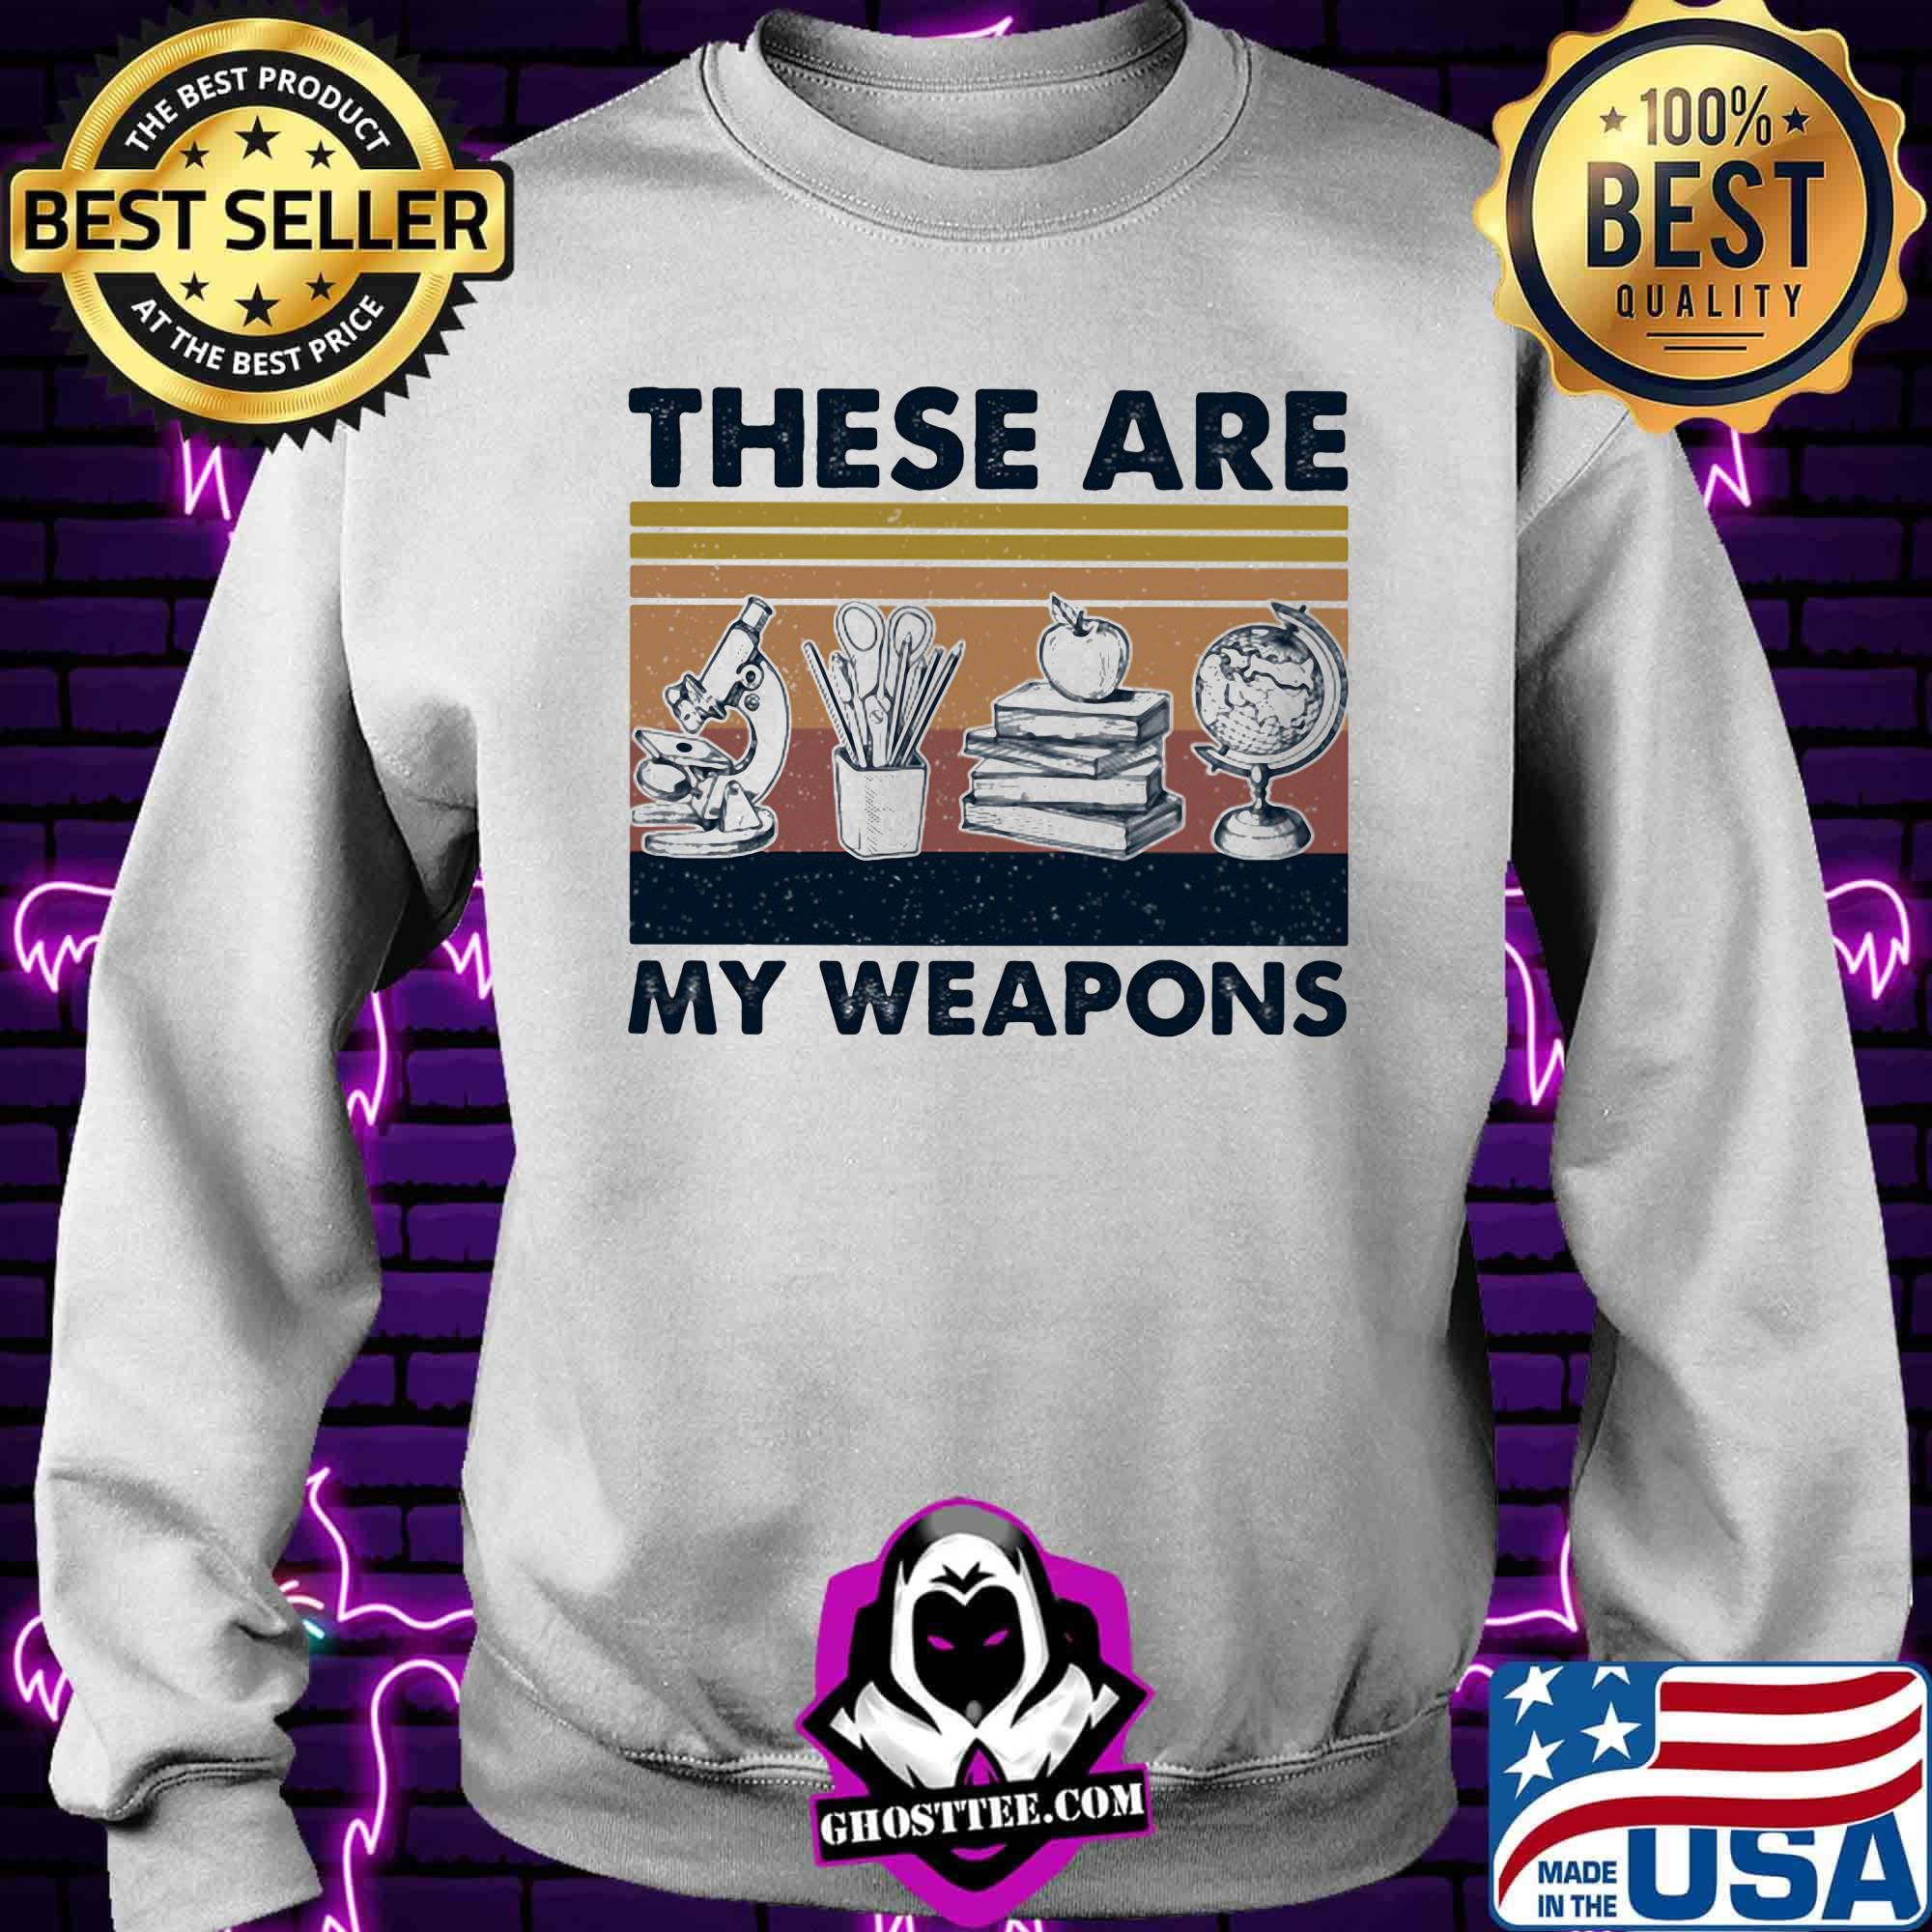 8543c116 these are my weapons microscope earth model pen box apple book vintage retro shirt sweater - Home